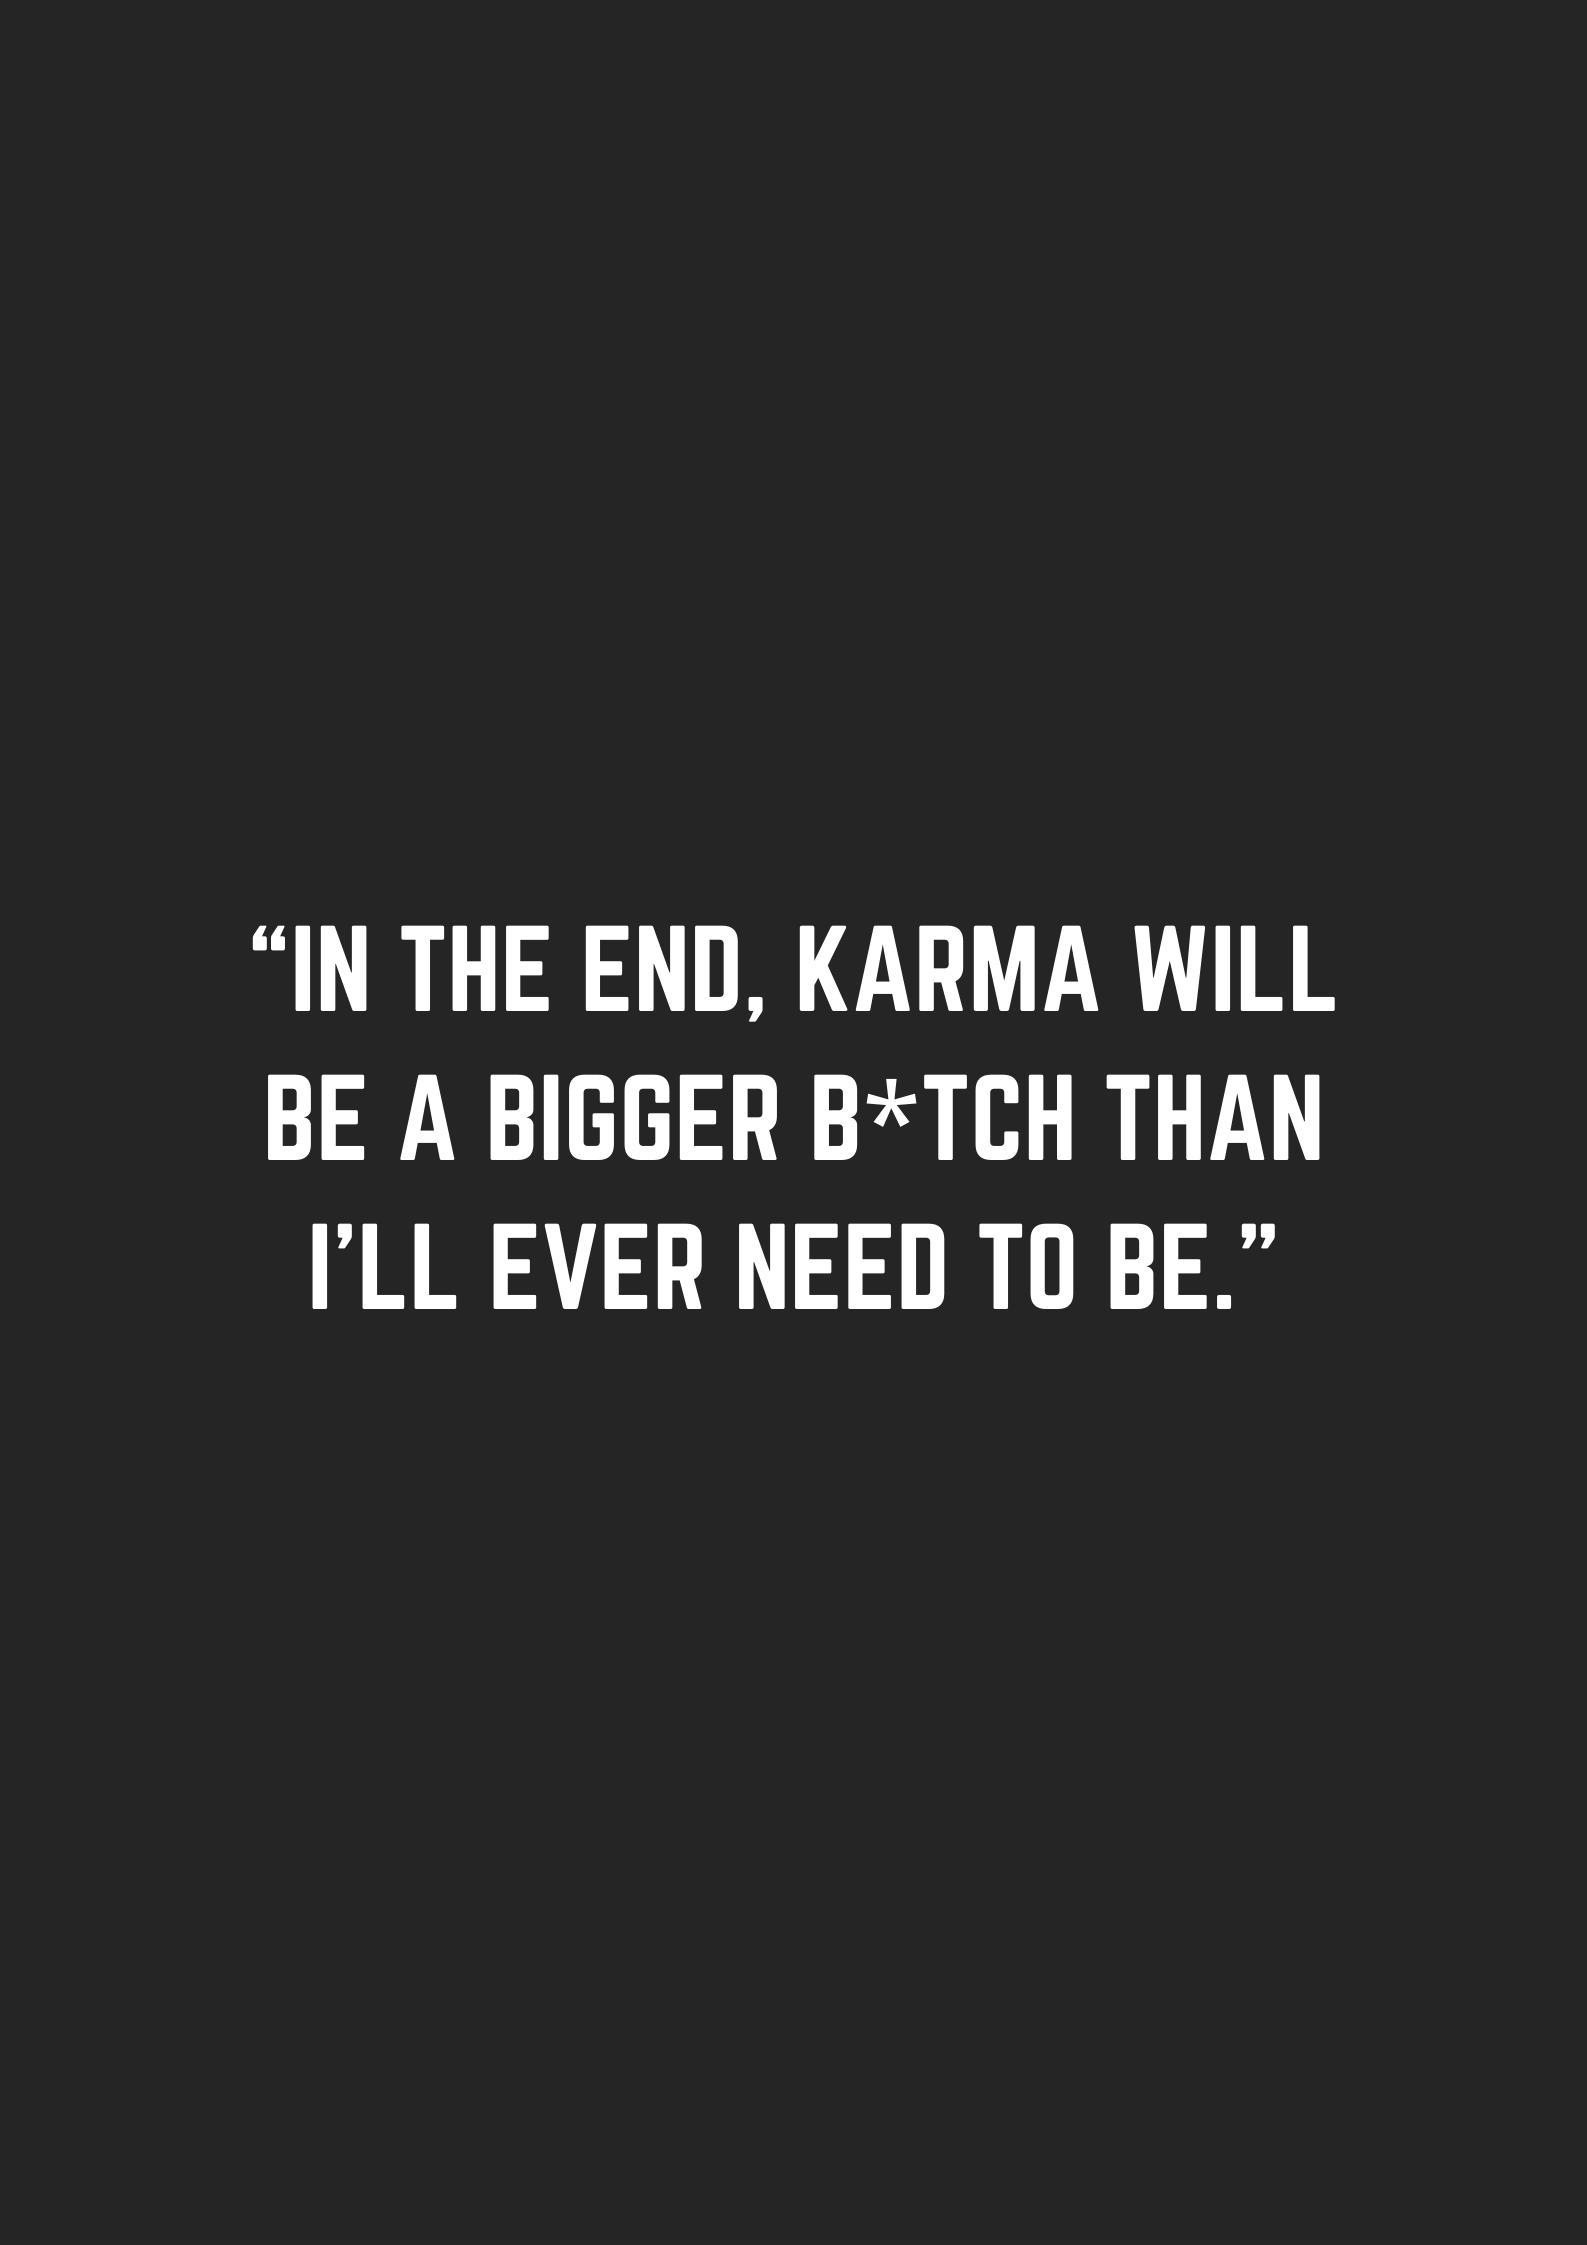 20 Karma Quotes Remind Us About Sweet Sweet Revenge In 2020 Karma Quotes Revenge Quotes Quotes